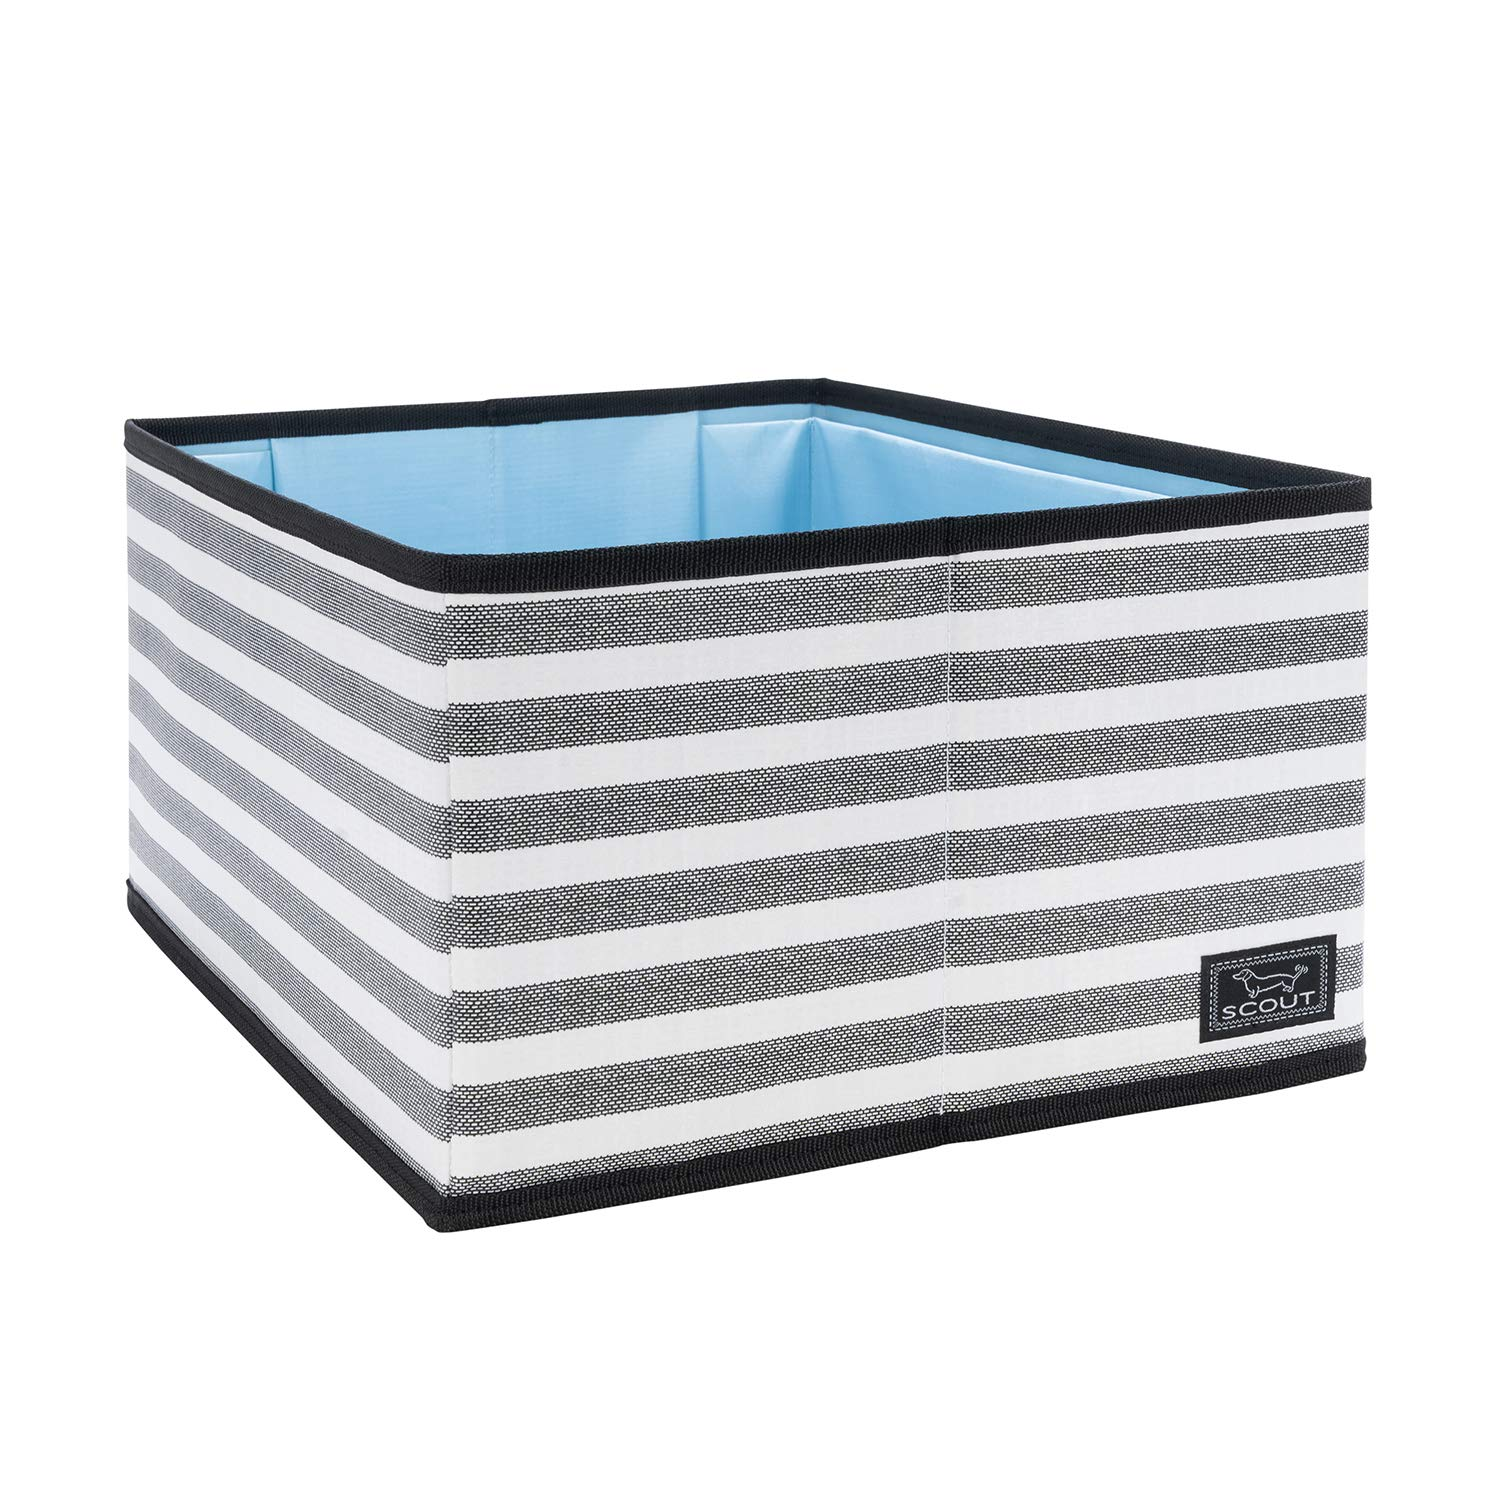 SCOUT Divide & Conquer Storage Bin, Collapsible and Stackable Storage Bin and Drawer Organizer with Dividers (Multiple Patterns Available) by SCOUT